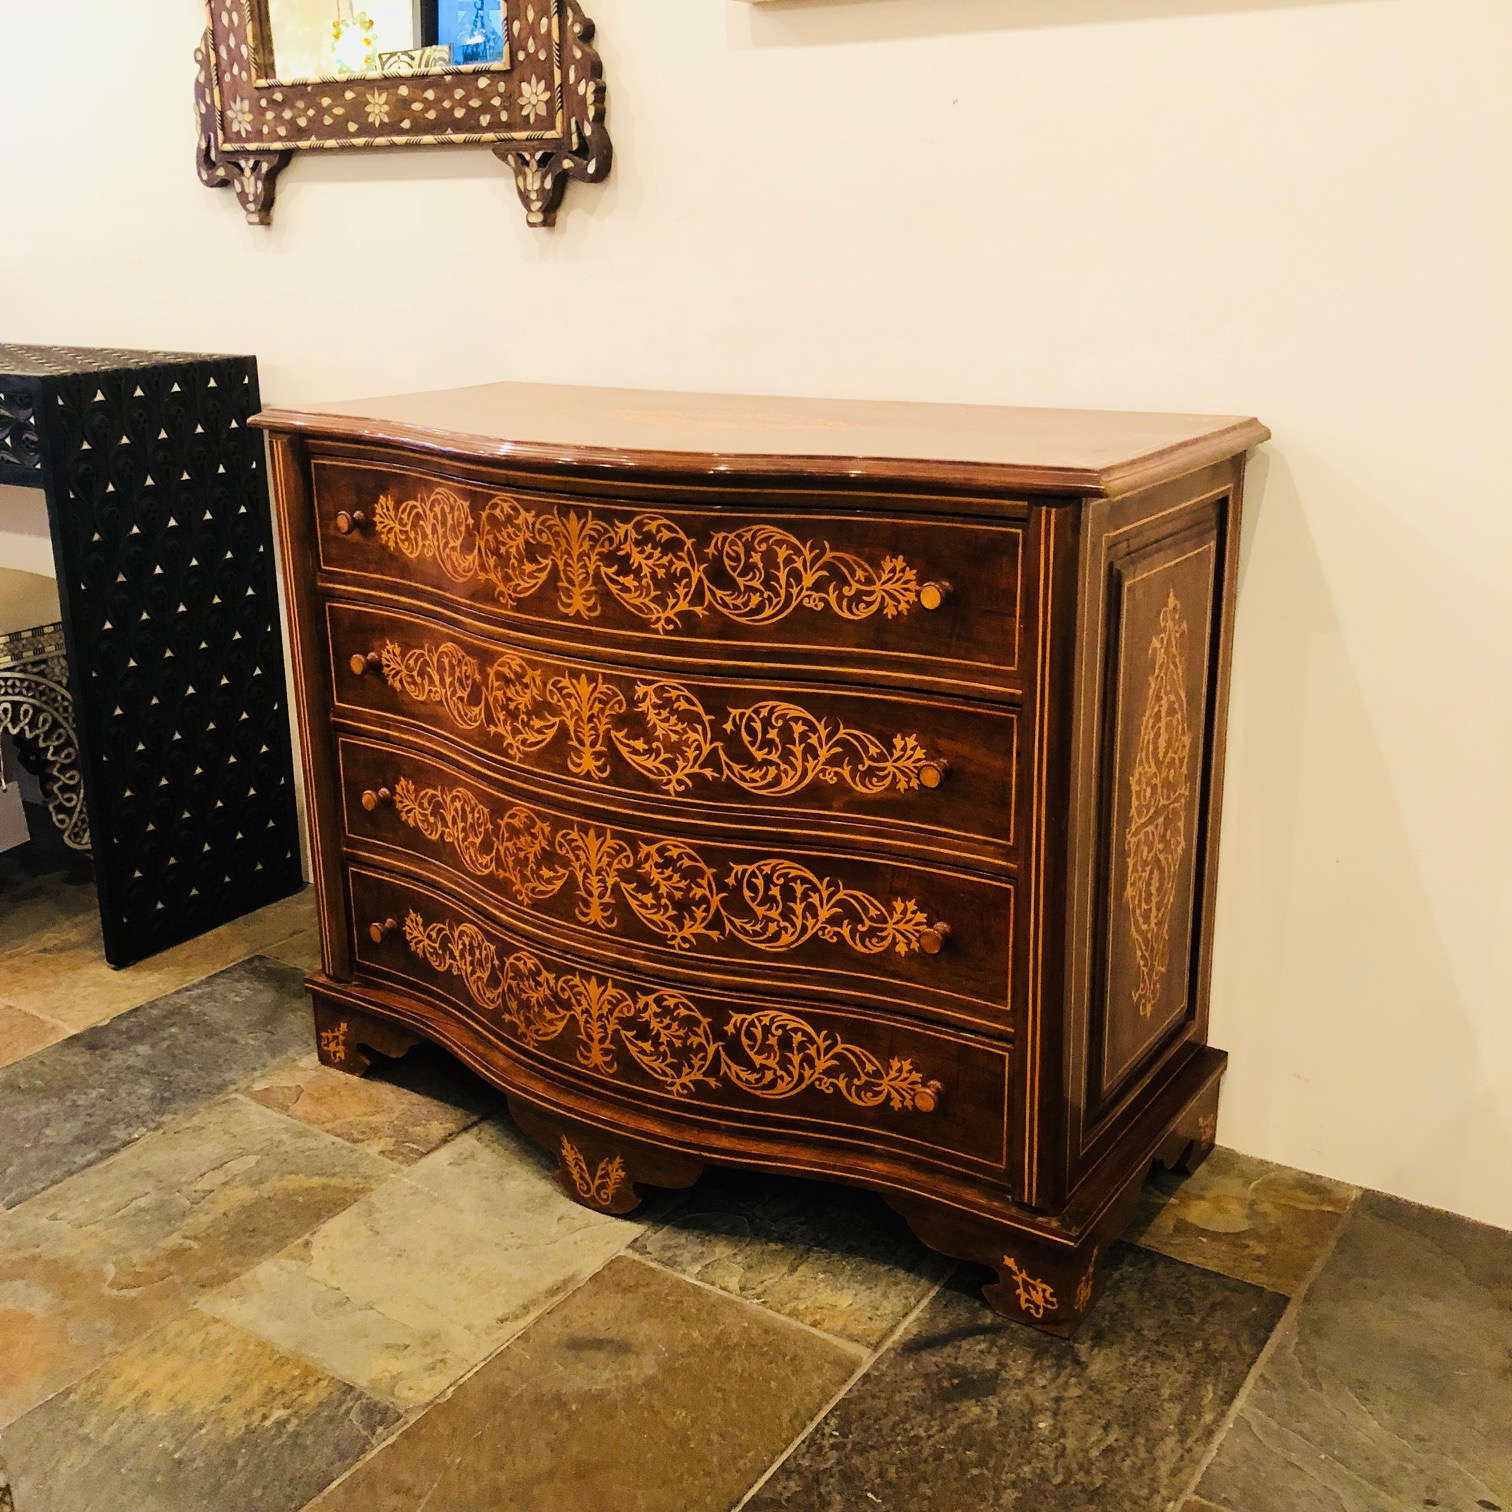 Syrian chest with drawers